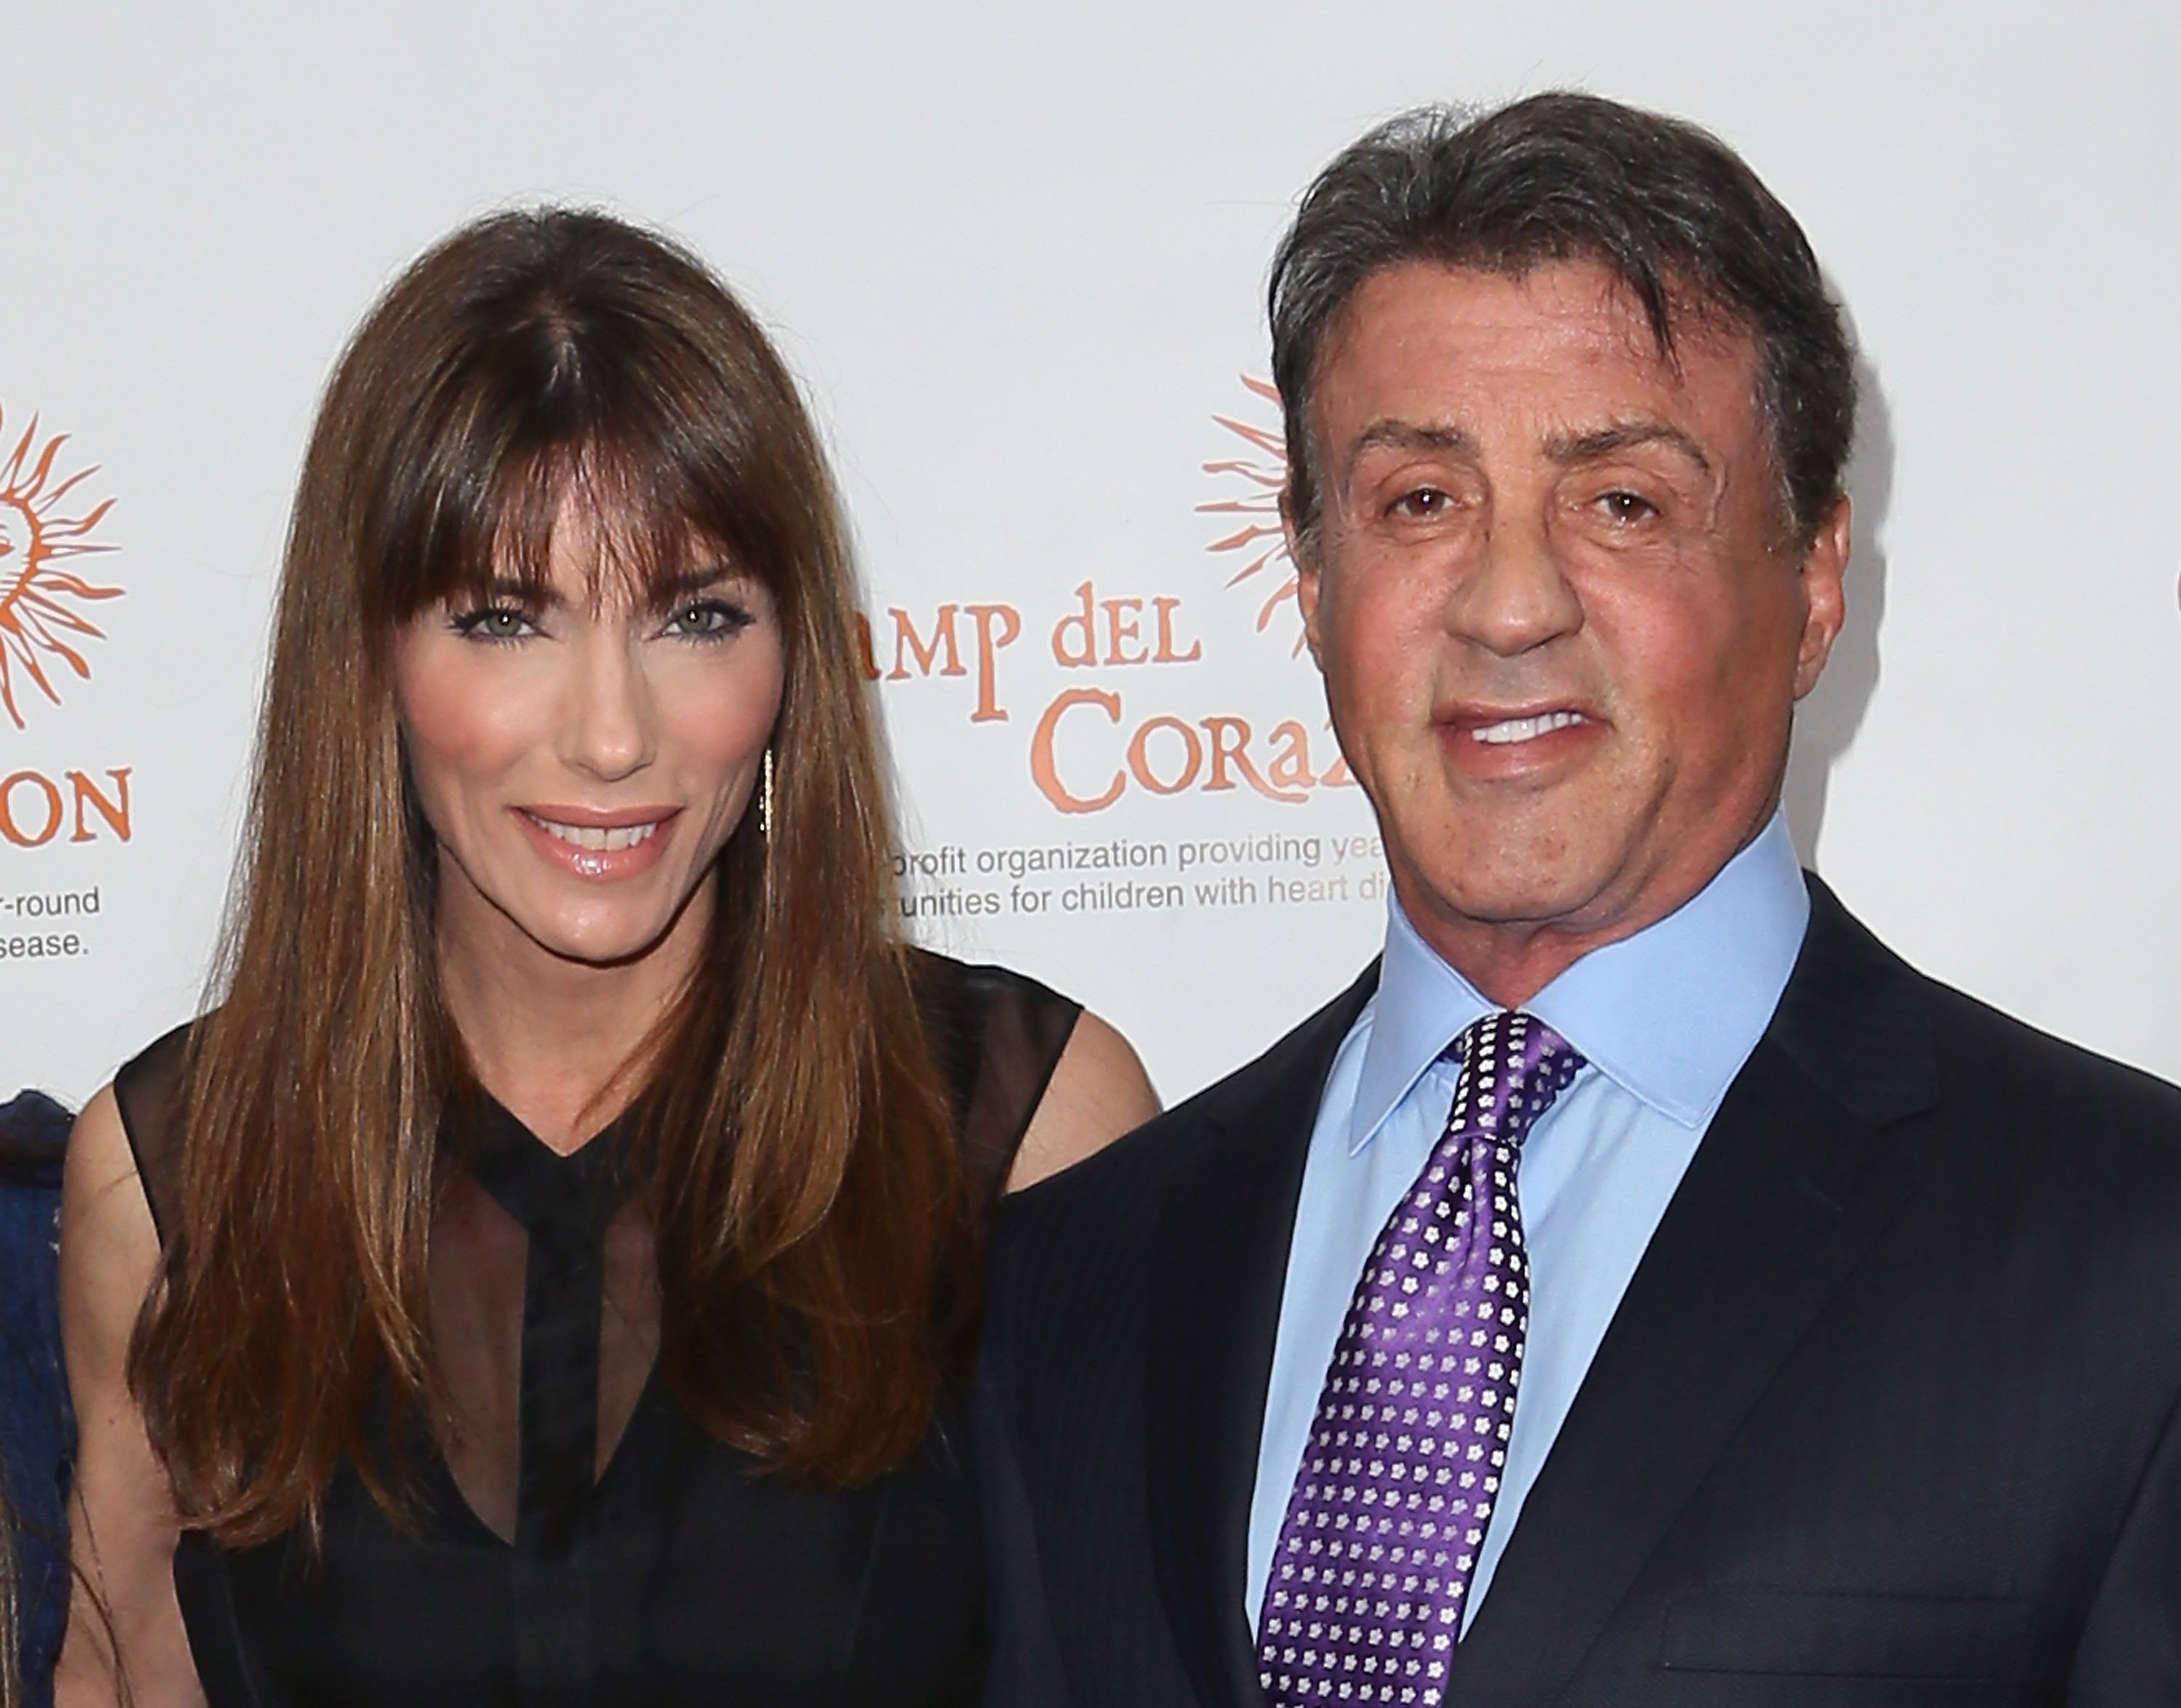 Sylvester Stallone et son épouse Jennifer Flavin au 11e Gala del Sol annuel du Camp del Corazon au Ray Dolby Ballroom du Hollywood & Highland Center le 19 avril 2014. | Source : Getty Images